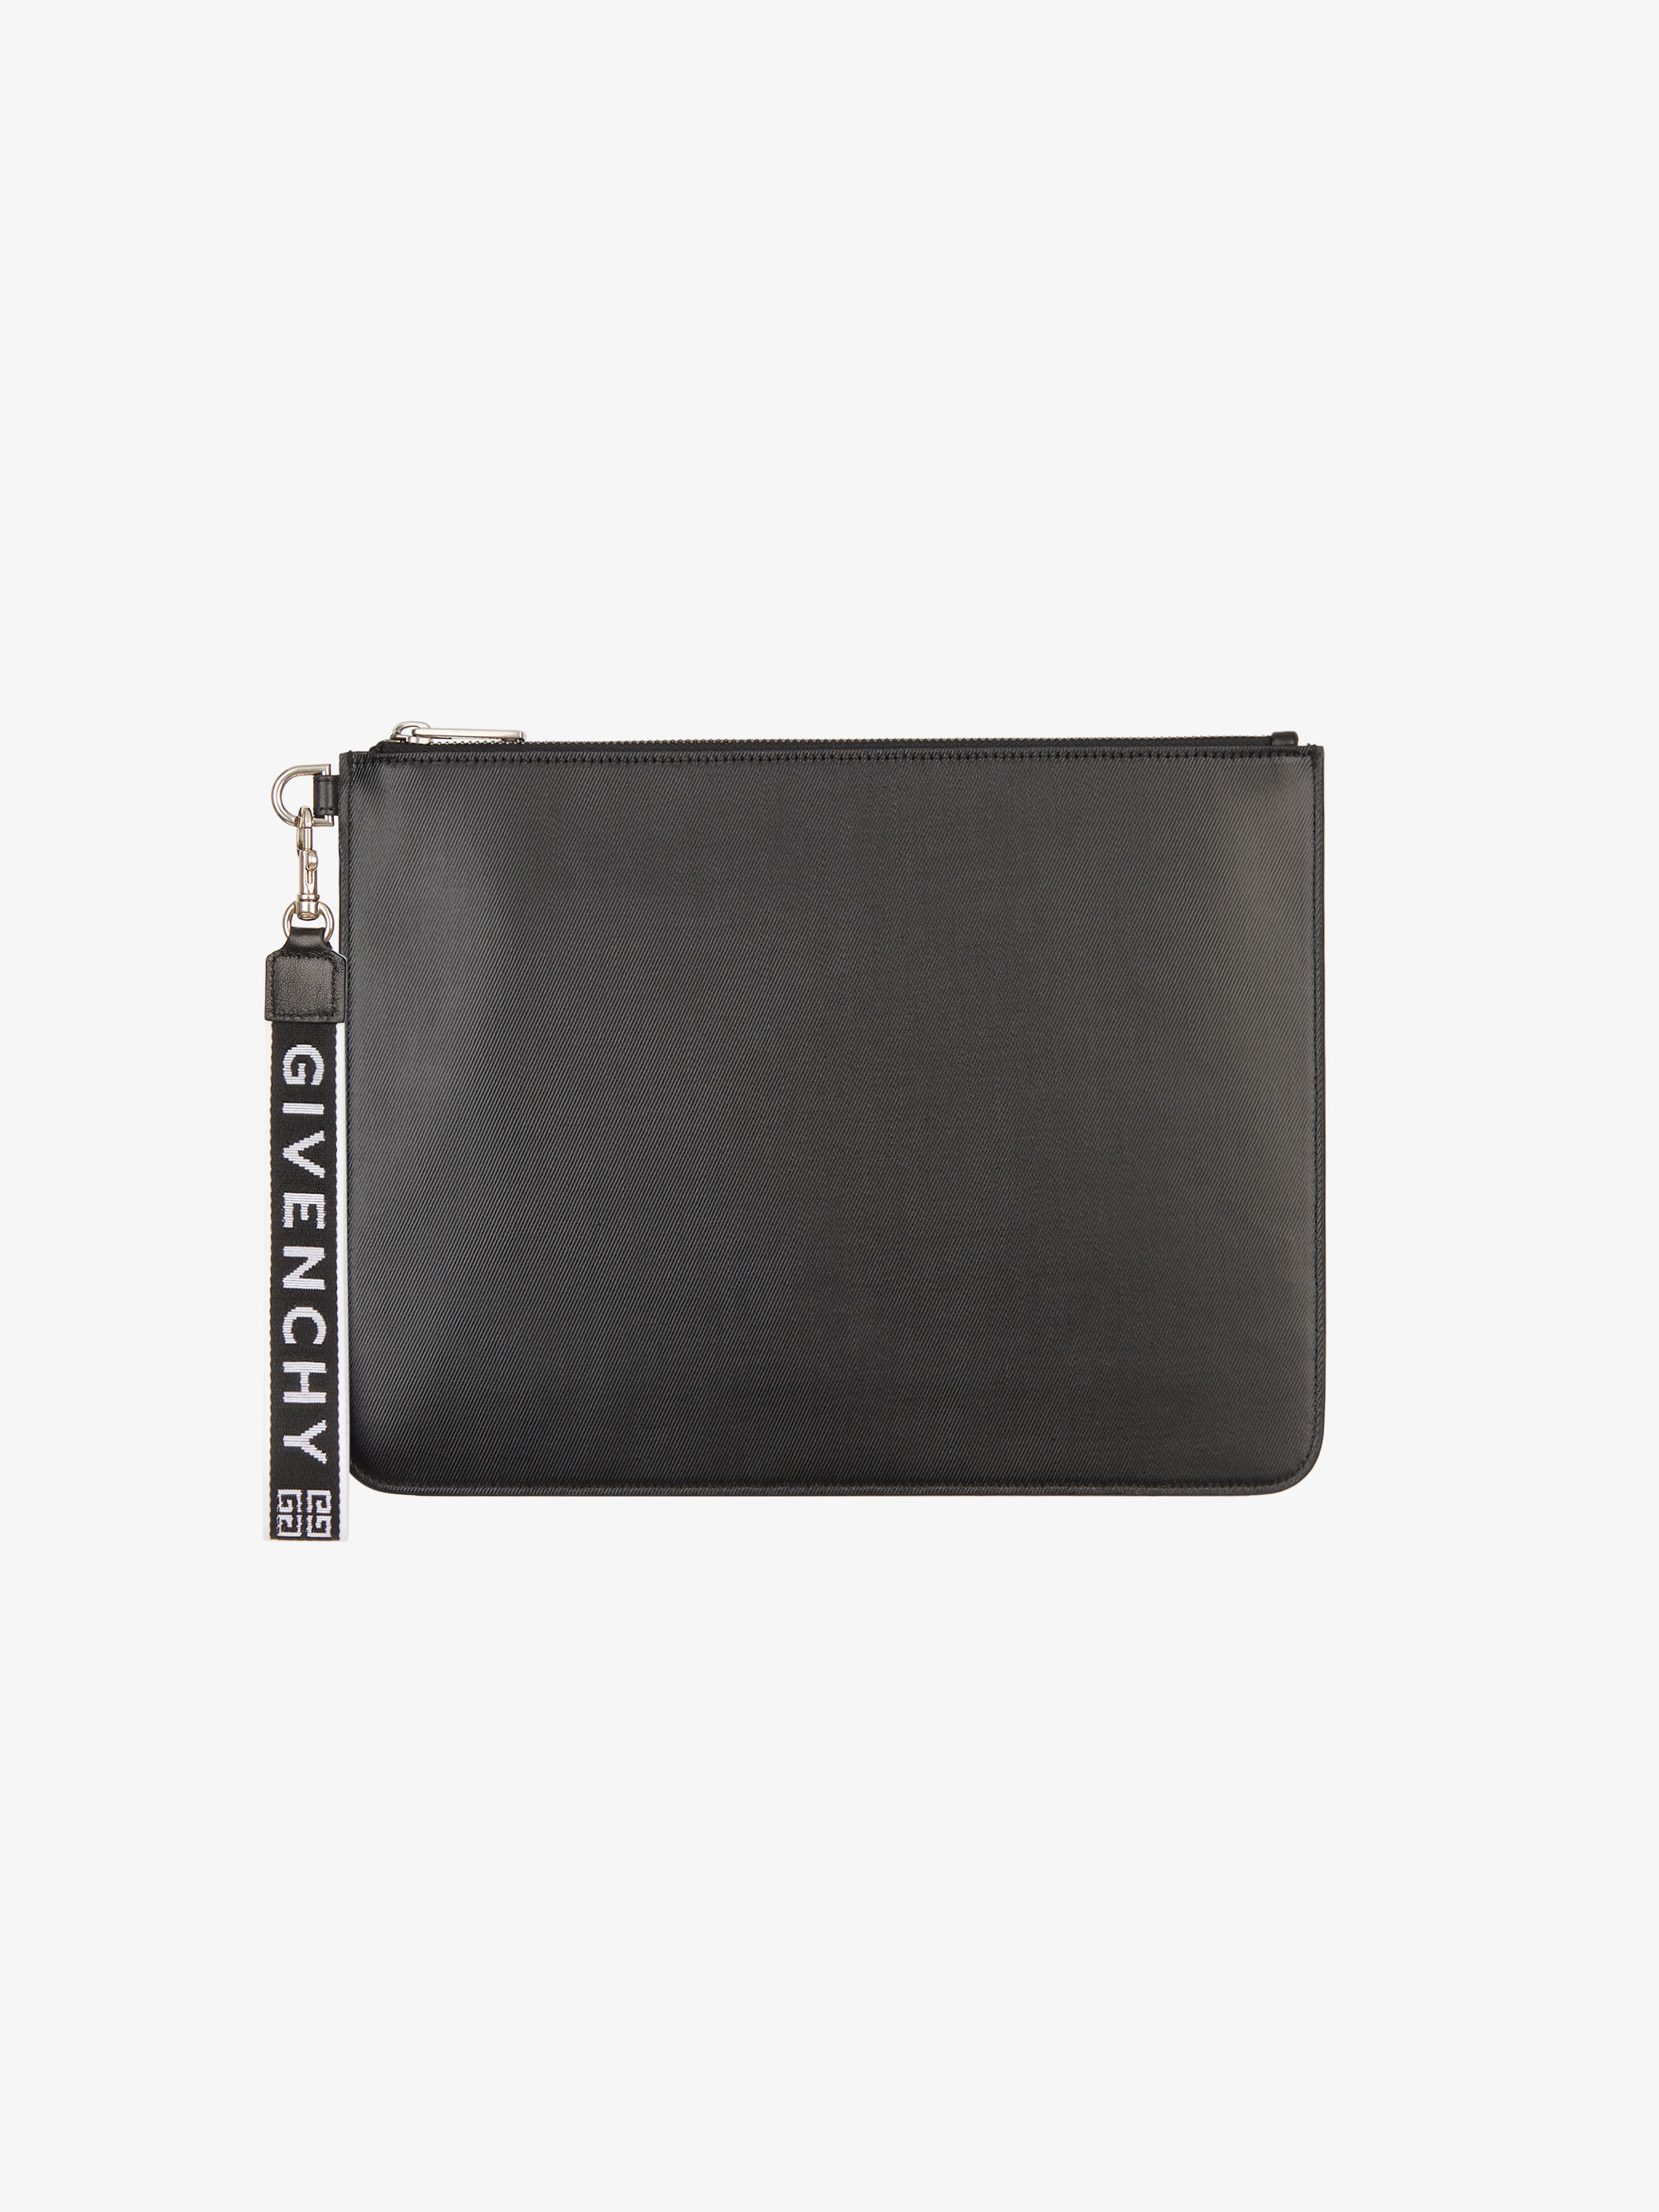 GIVENCHY 4G wrist strap large pouch in coated canvas